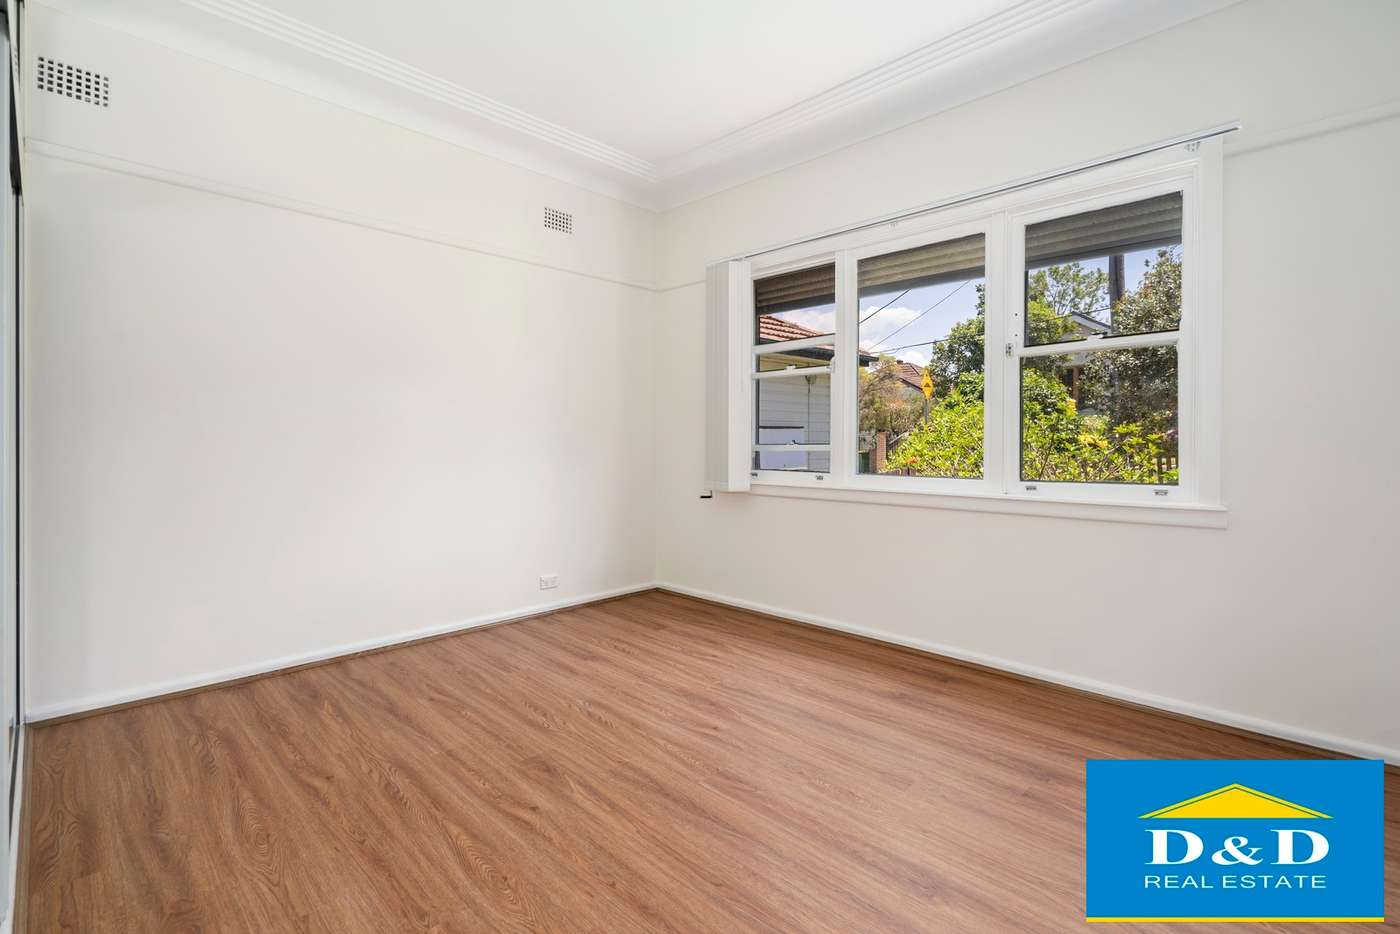 Sixth view of Homely house listing, 17 Ferris Street, North Parramatta NSW 2151